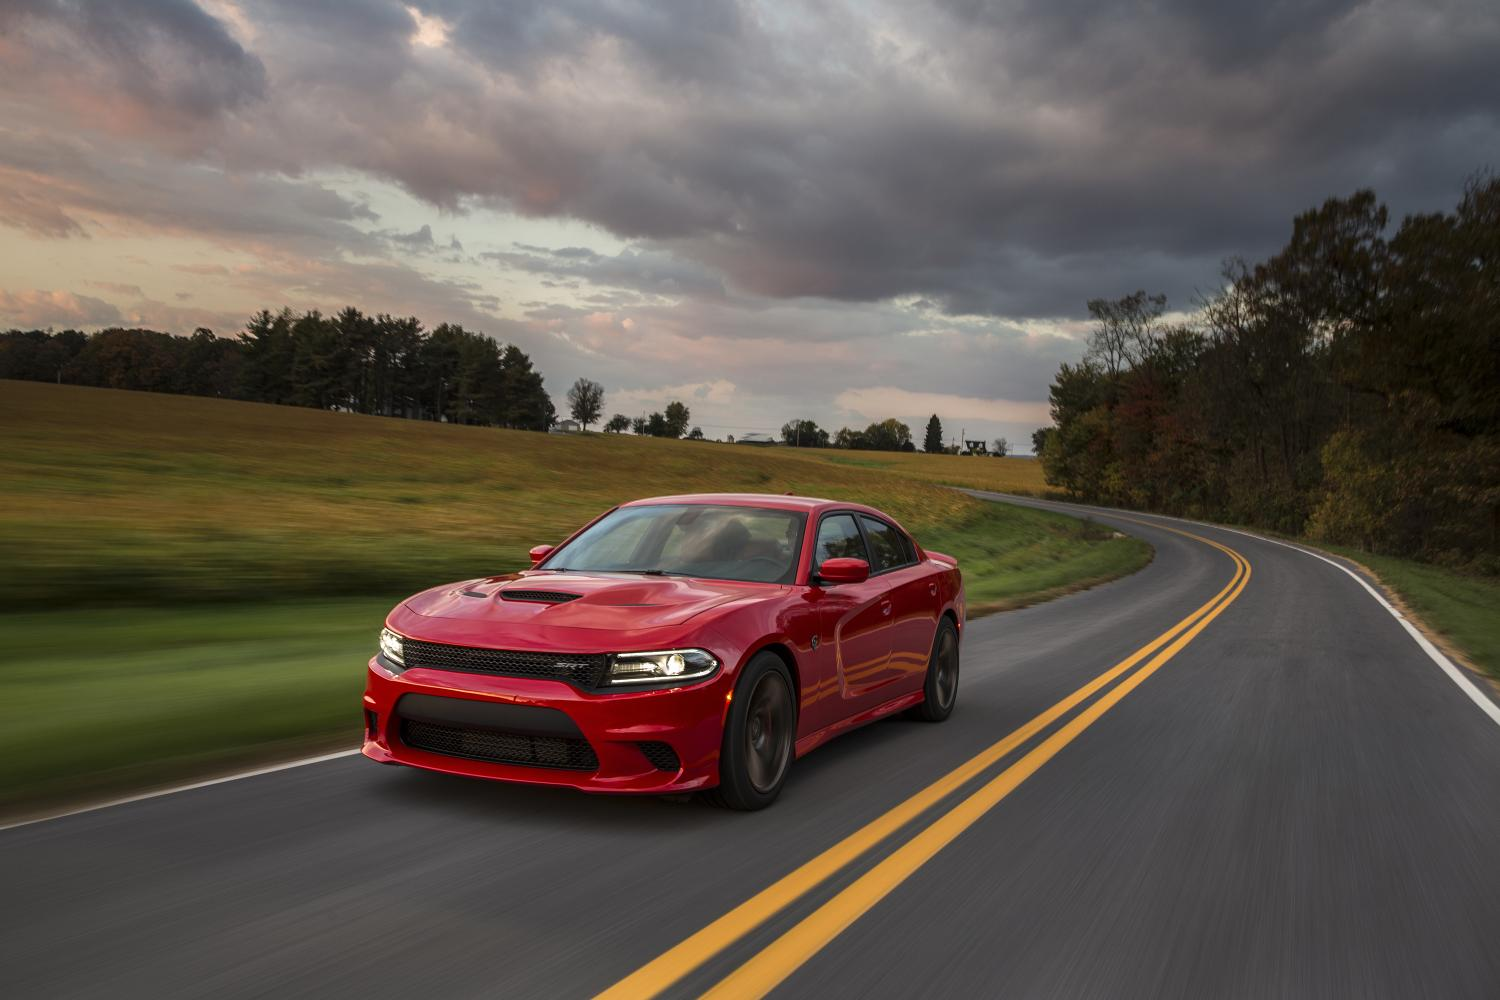 2015 dodge charger srt hellcat fuel economy 13 mpg city 22 mpg highway autoevolution. Black Bedroom Furniture Sets. Home Design Ideas